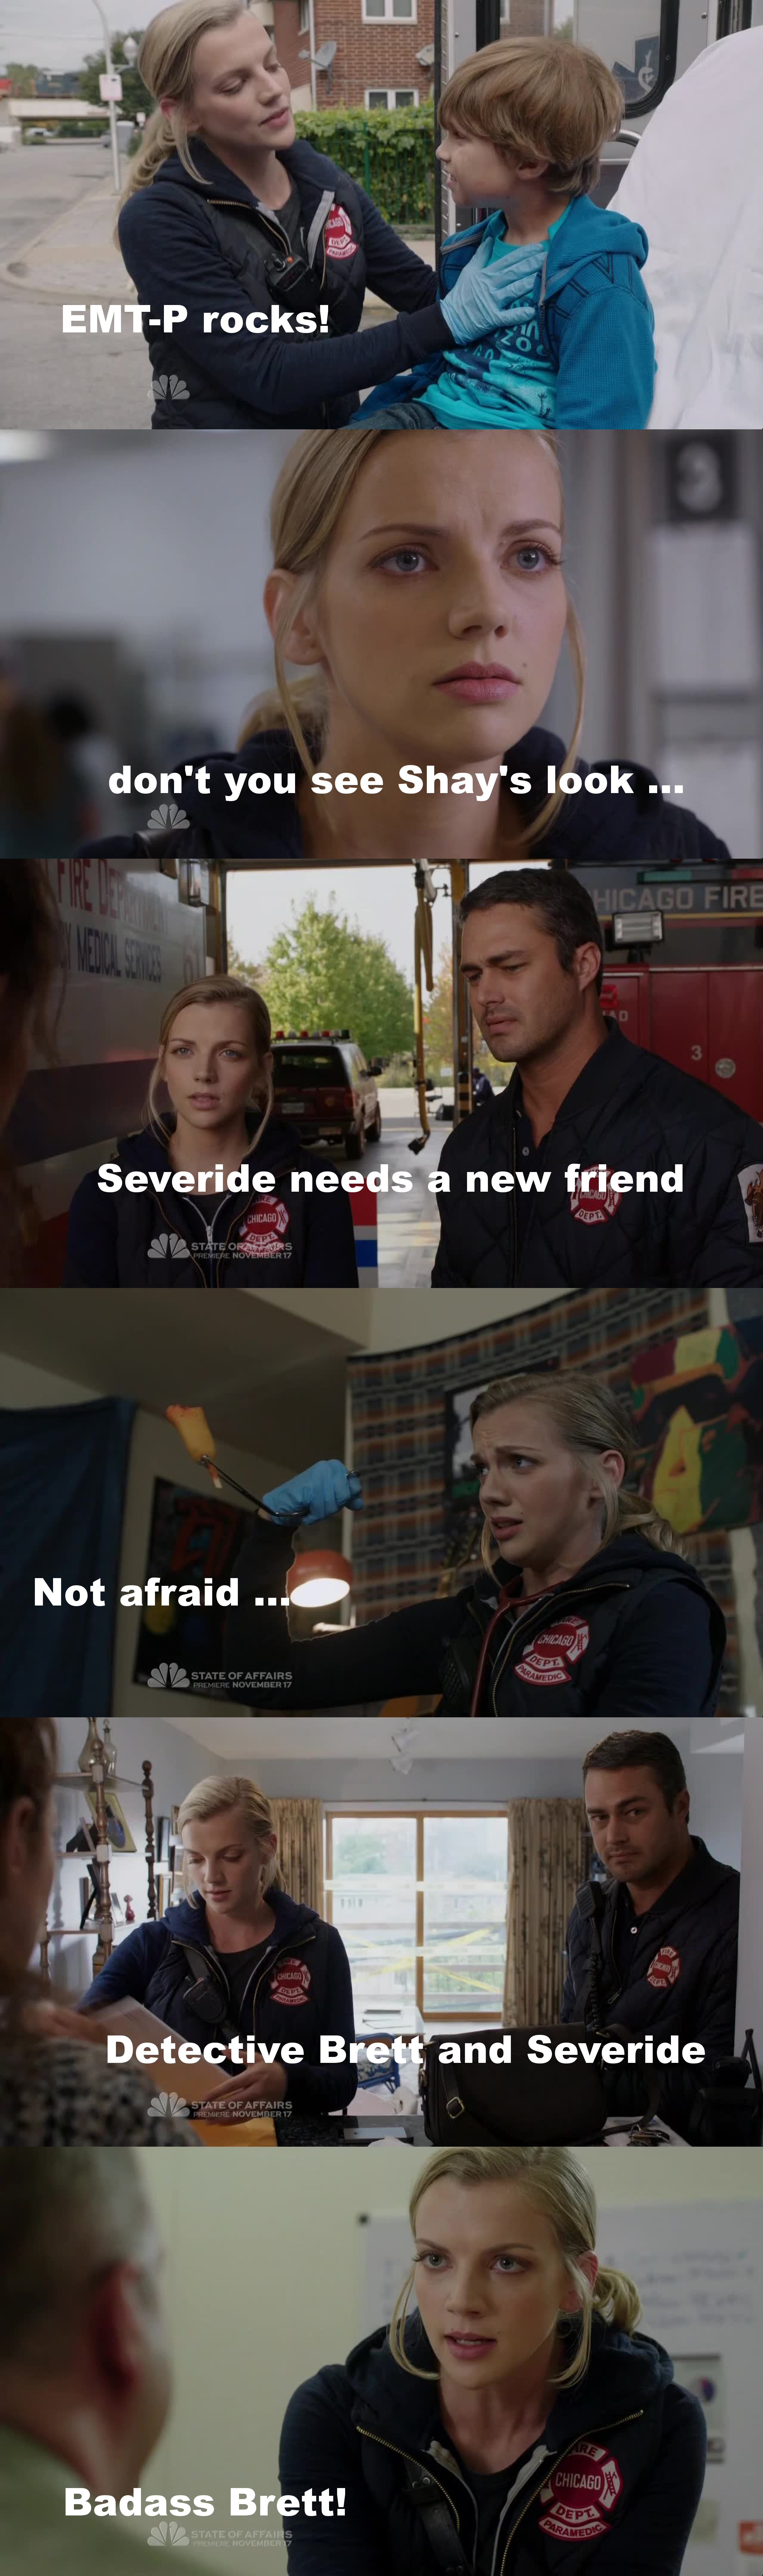 """Sooo ... This episode has been the one when I can say : Brett you rock! BUUUT, the struggle is real ... Who didn't thought of Shay for a sec?! I mean, Shay would have done the same thing for the little boy, like literally!! (Even hookup with the mom maybe ;p ) and doing it with Severide! He wouldn't have hesitate a sec! But he was right, Shay has been involve to much with victim in the past and that hurt her a lot ...  Anyway, Sylvie Brett is more badass than we though! She is an excellent EMT-P, a nice girl, a tough one (remember the robbery last week?!) she is GOOD! But she won't replace Shay and I don't think it's a smart move from the writers to give us the feelings that Brett is """"the new Shay"""" (cause it's impossible) and I'm still not over their decision to kill her ....  Anyway, Brett, welcome to the CF family!"""